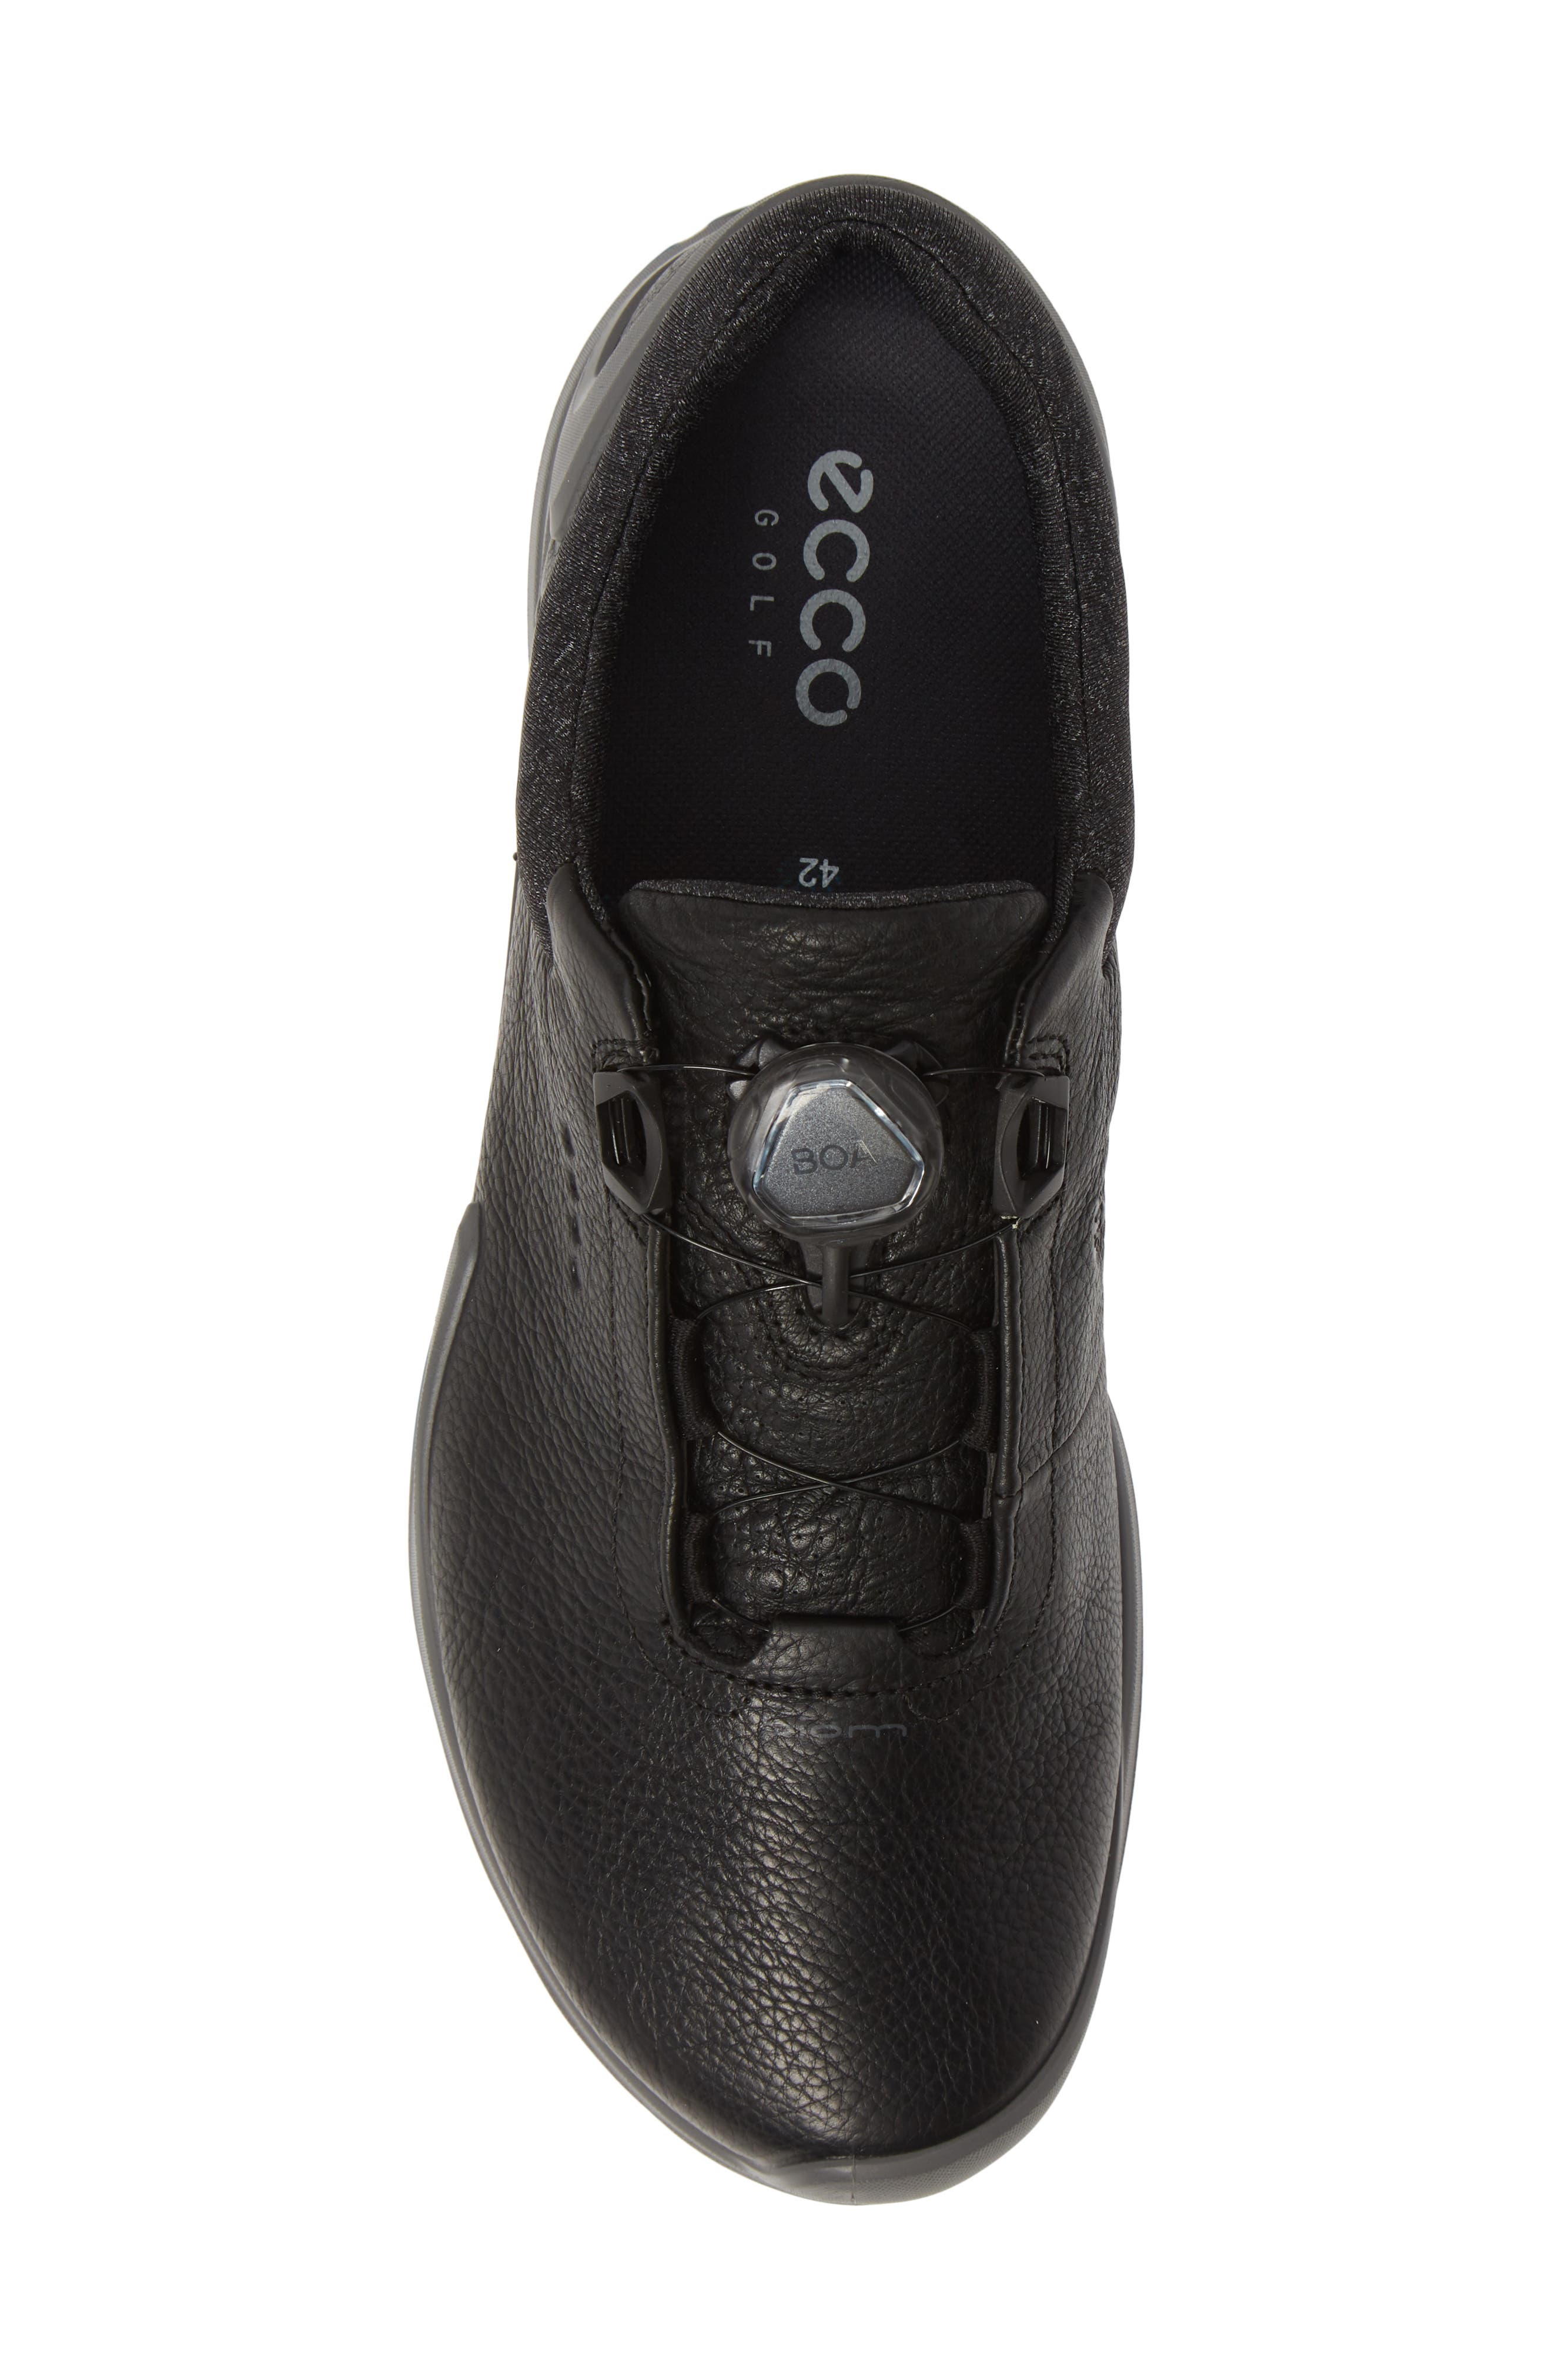 ECCO, BIOM<sup>®</sup> G 3 BOA<sup>®</sup> Gore-Tex<sup>®</sup> Golf Shoe, Alternate thumbnail 5, color, BLACK LEATHER